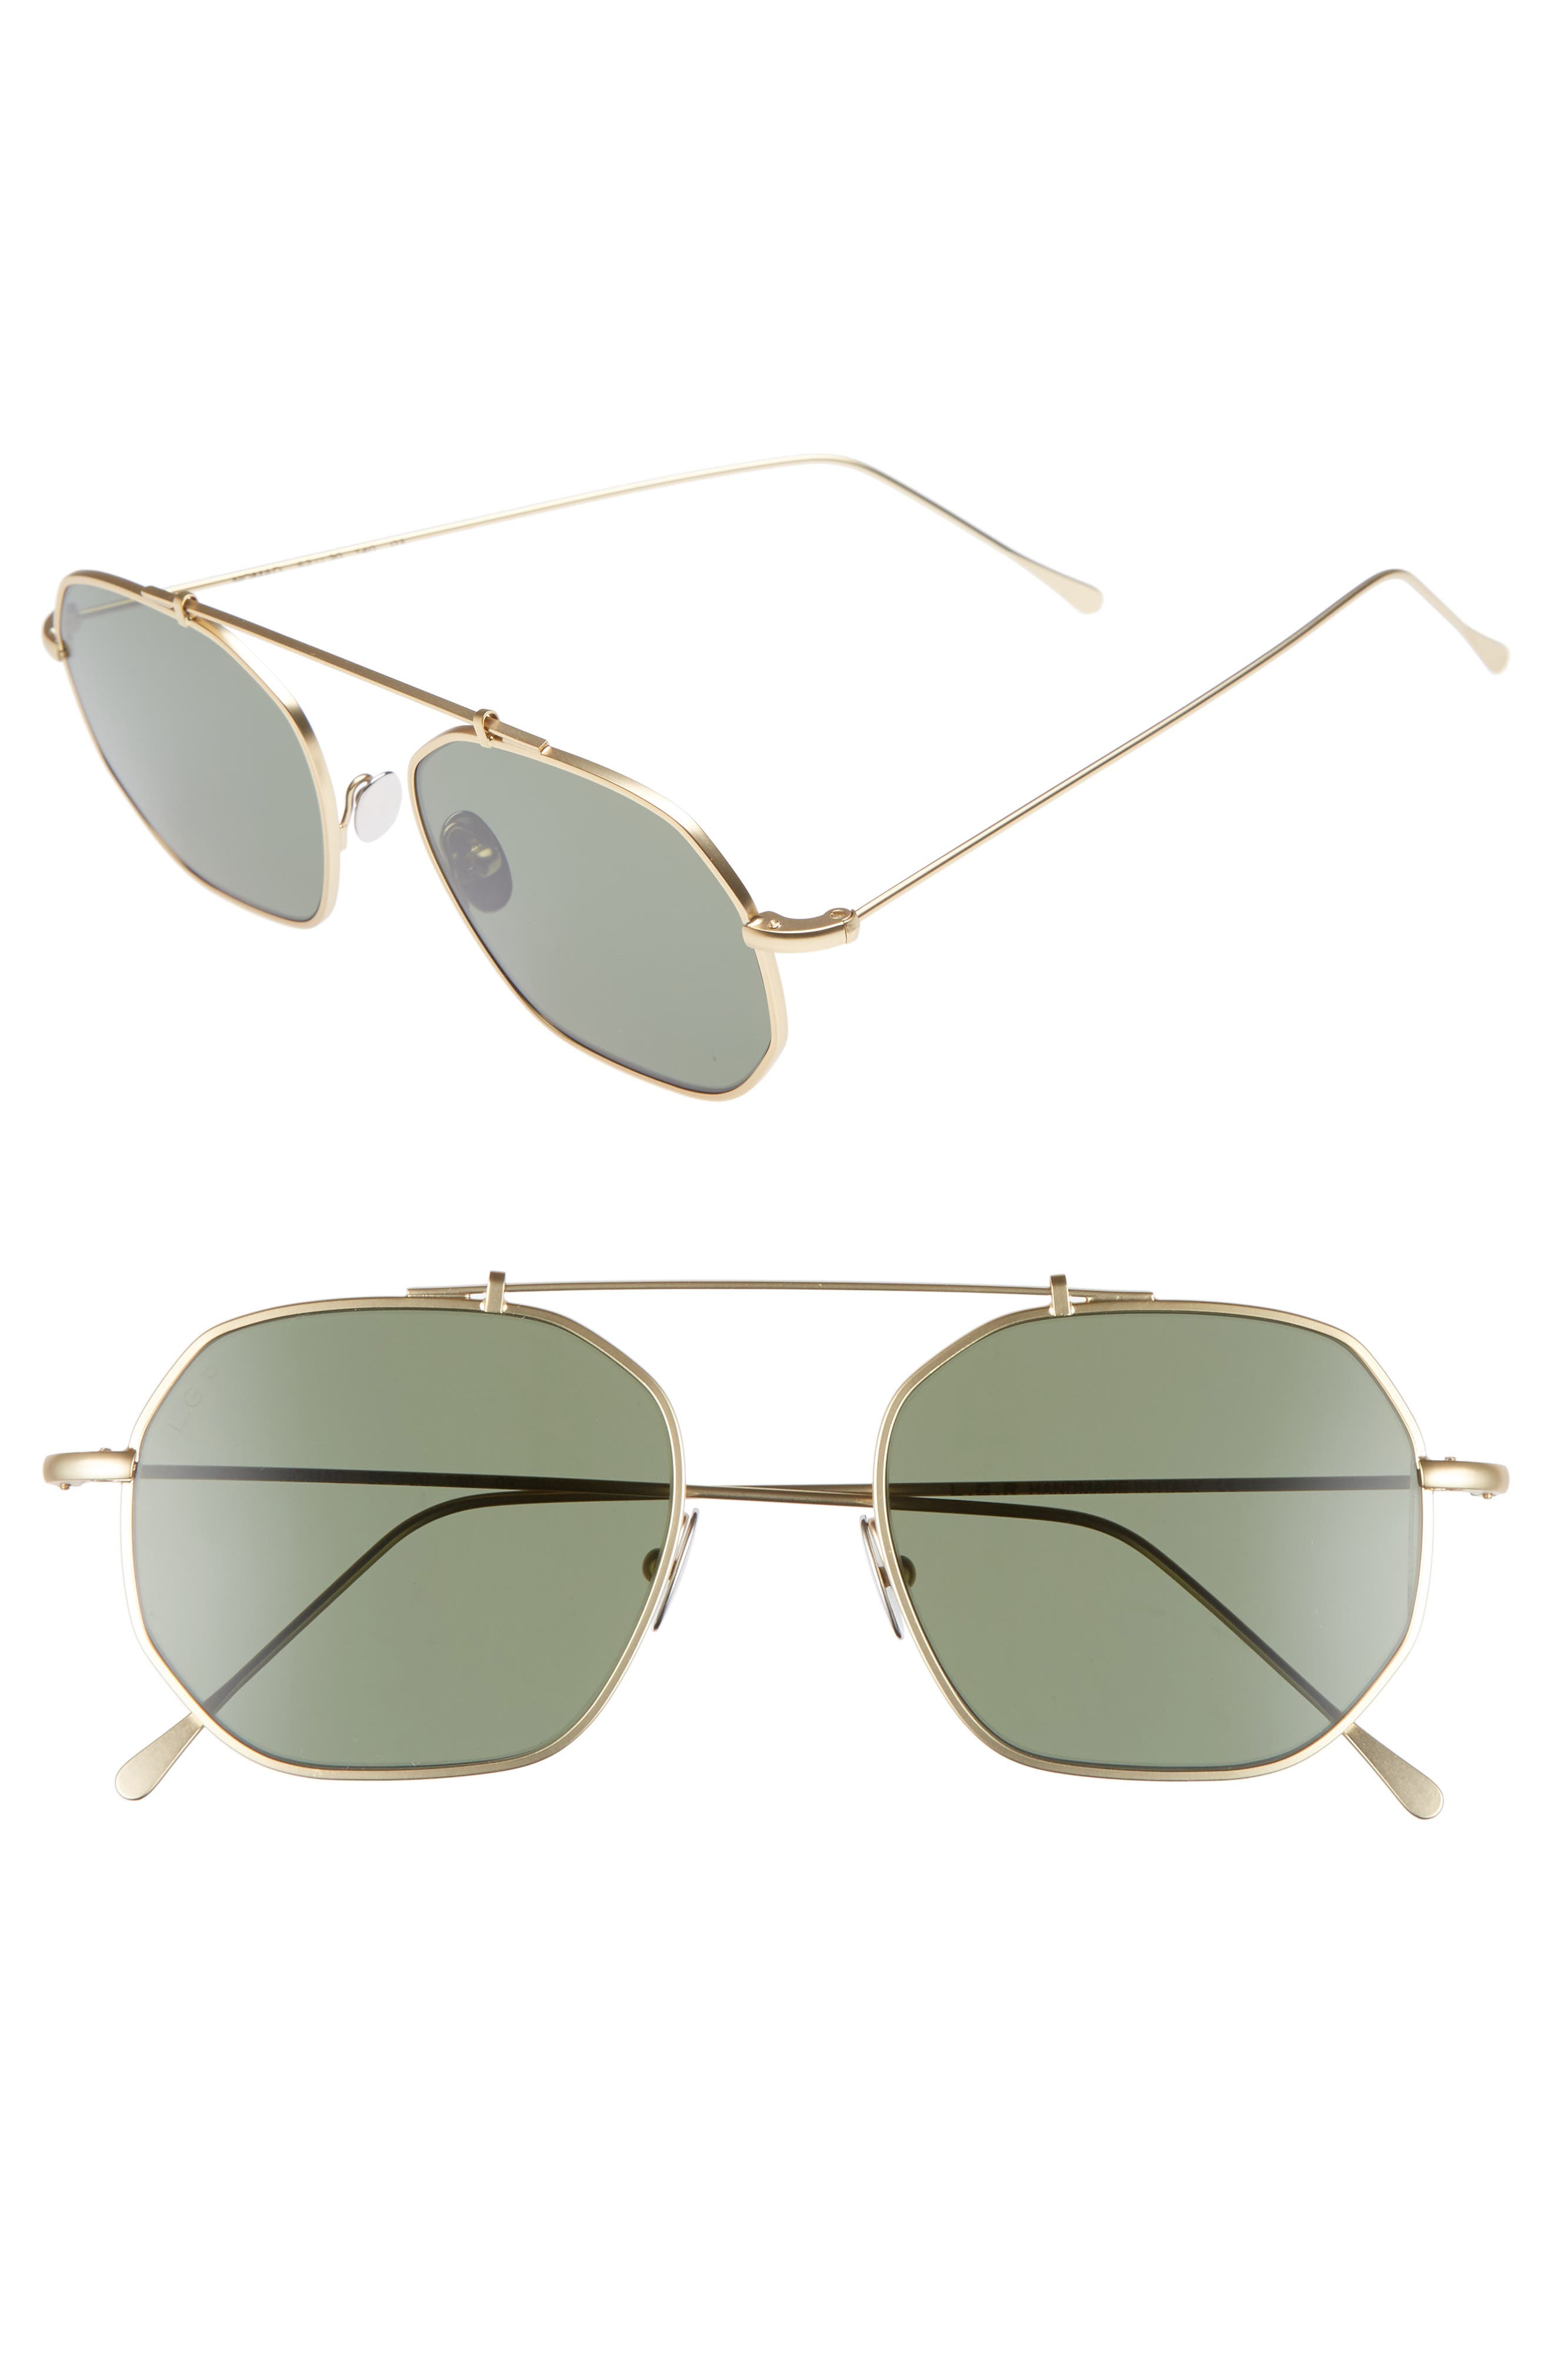 Main Image - L.G.R Nomad 52mm Sunglasses